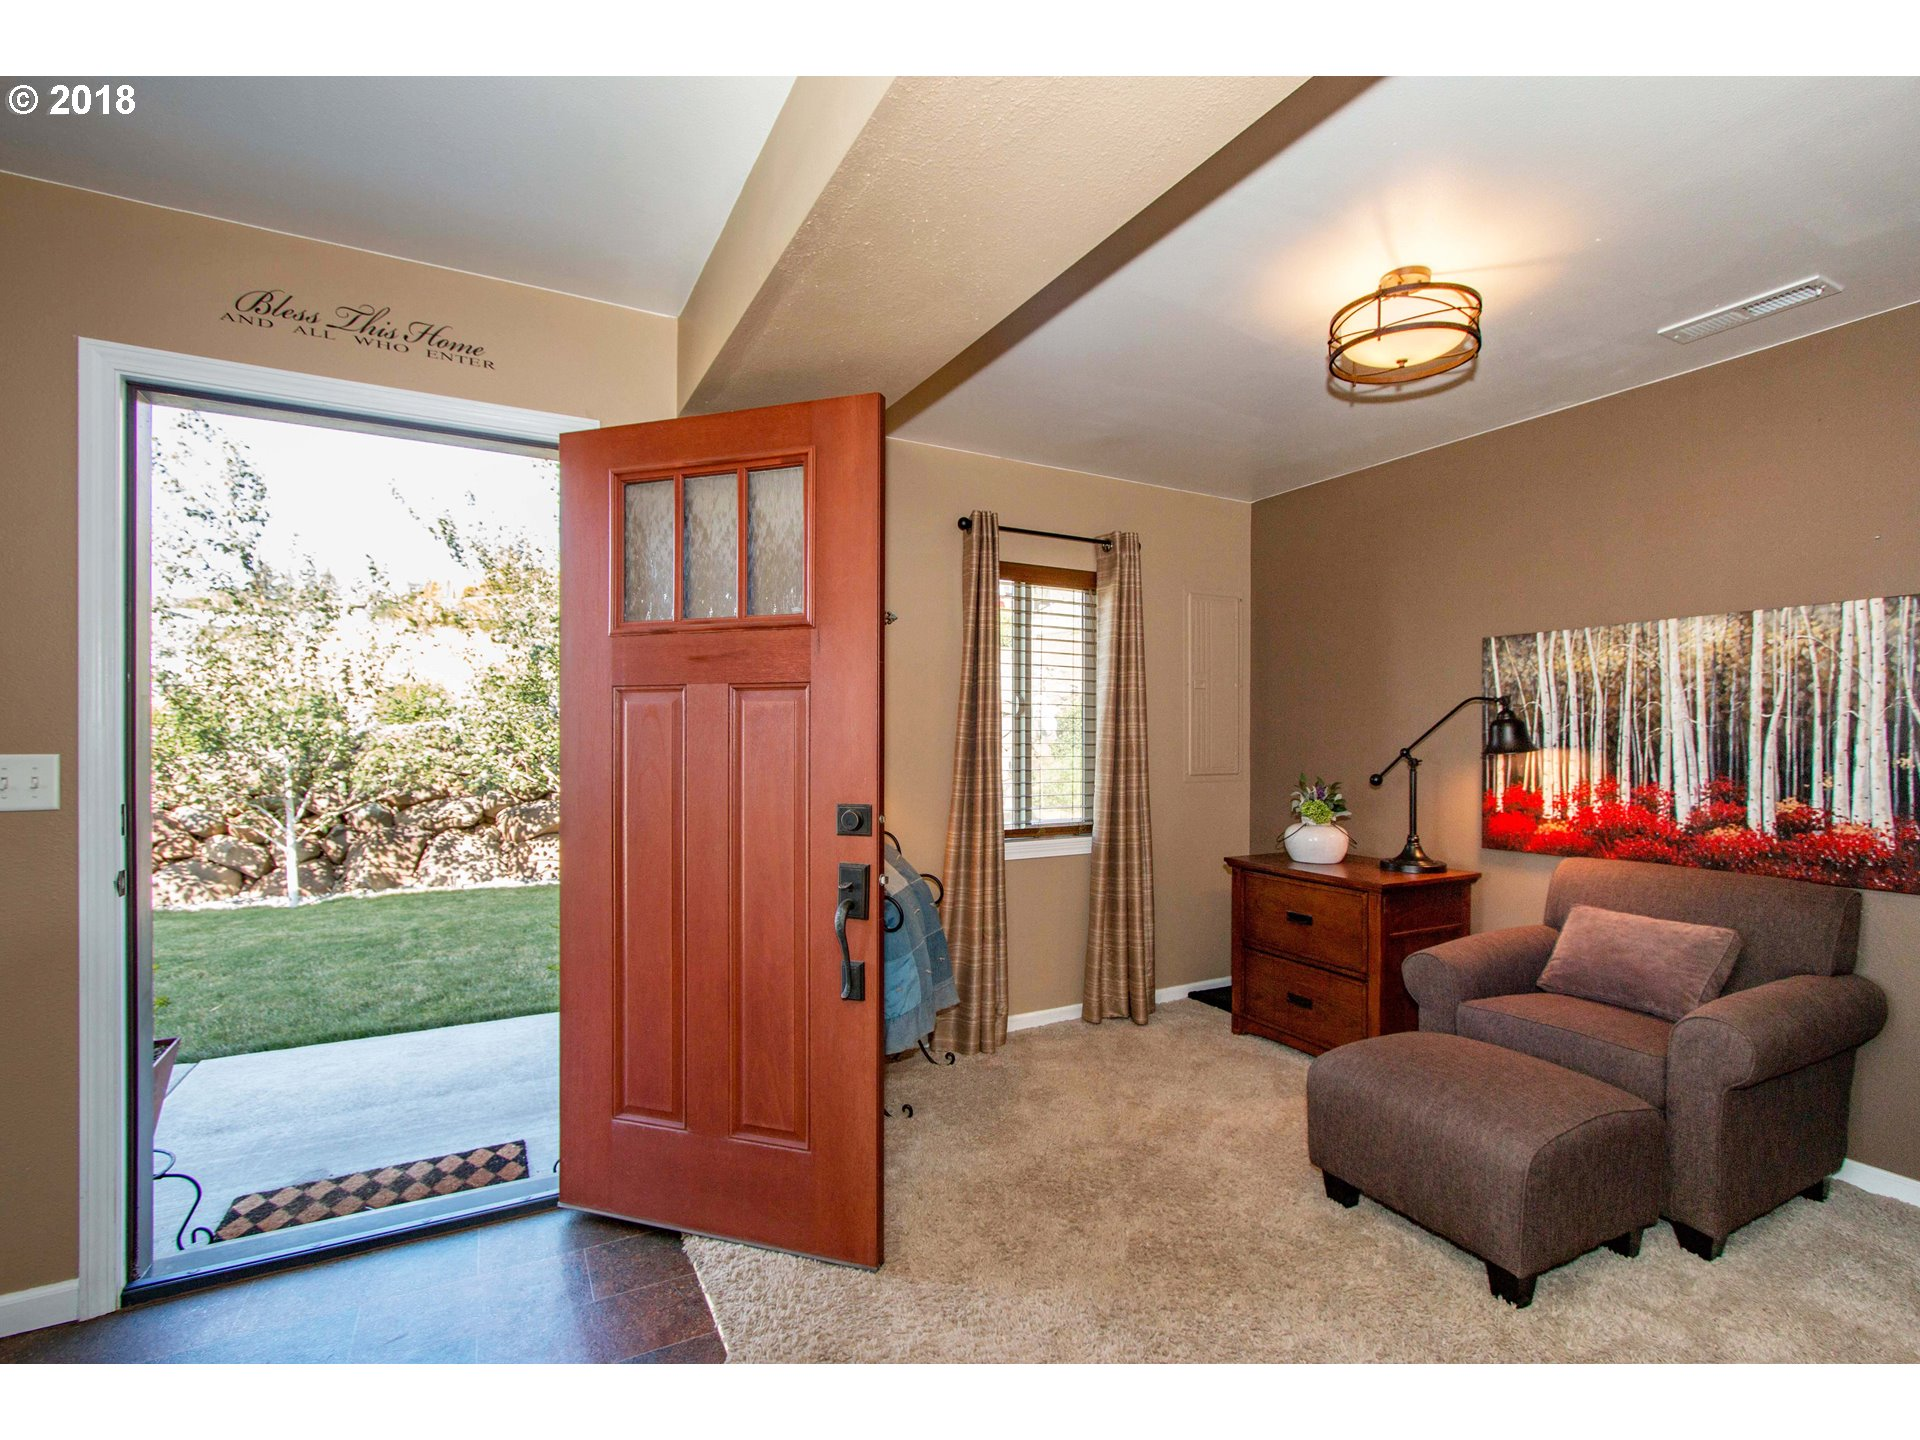 1115 SUNFLOWER The Dalles, OR 97058 - MLS #: 18659766